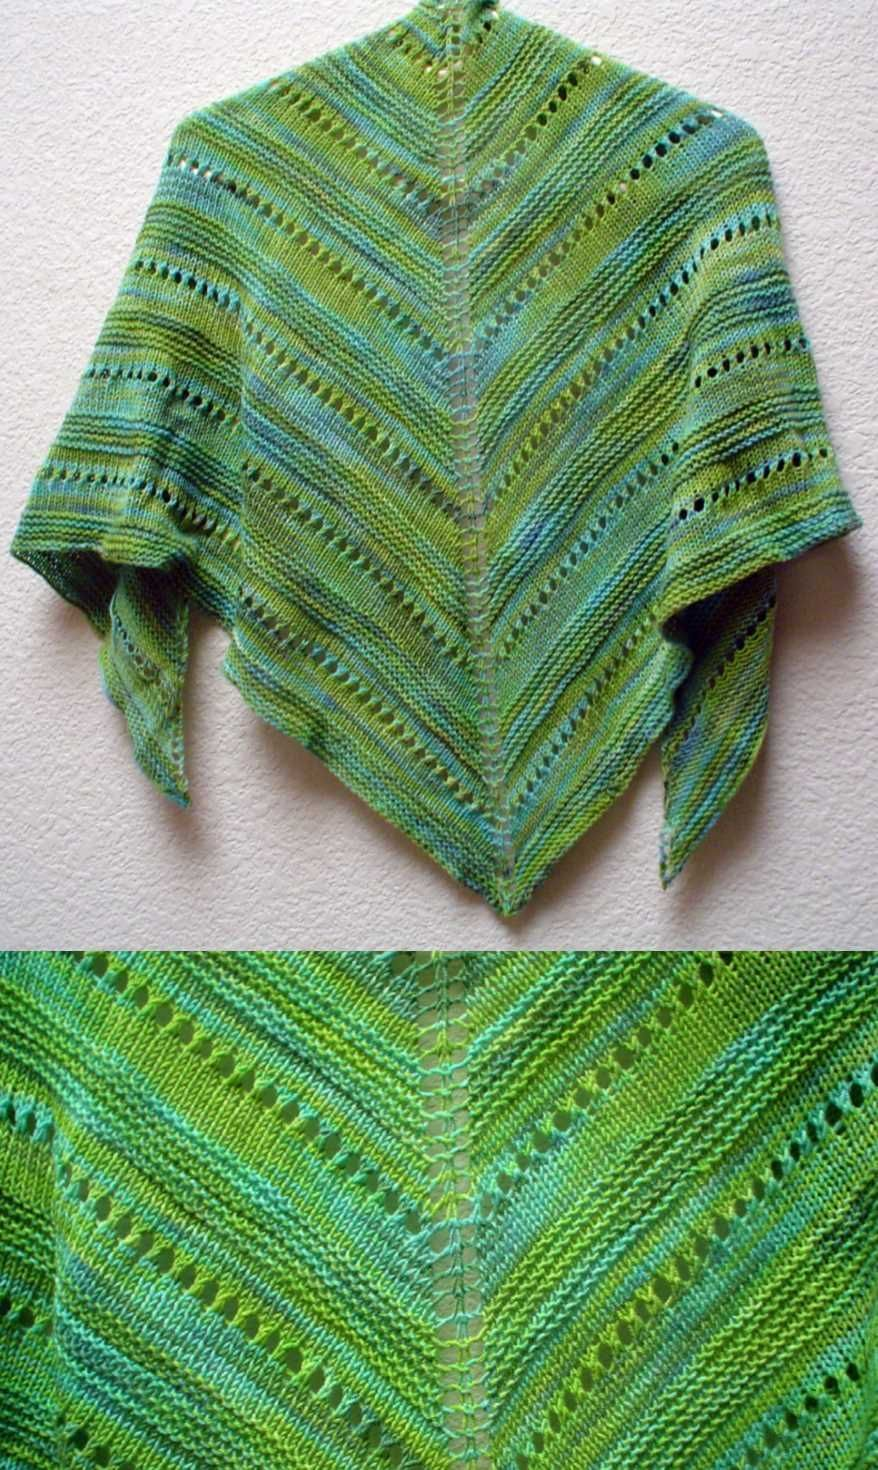 Free Lace Knitting Patterns for Beginners Easy Shawl. | otulacze ...